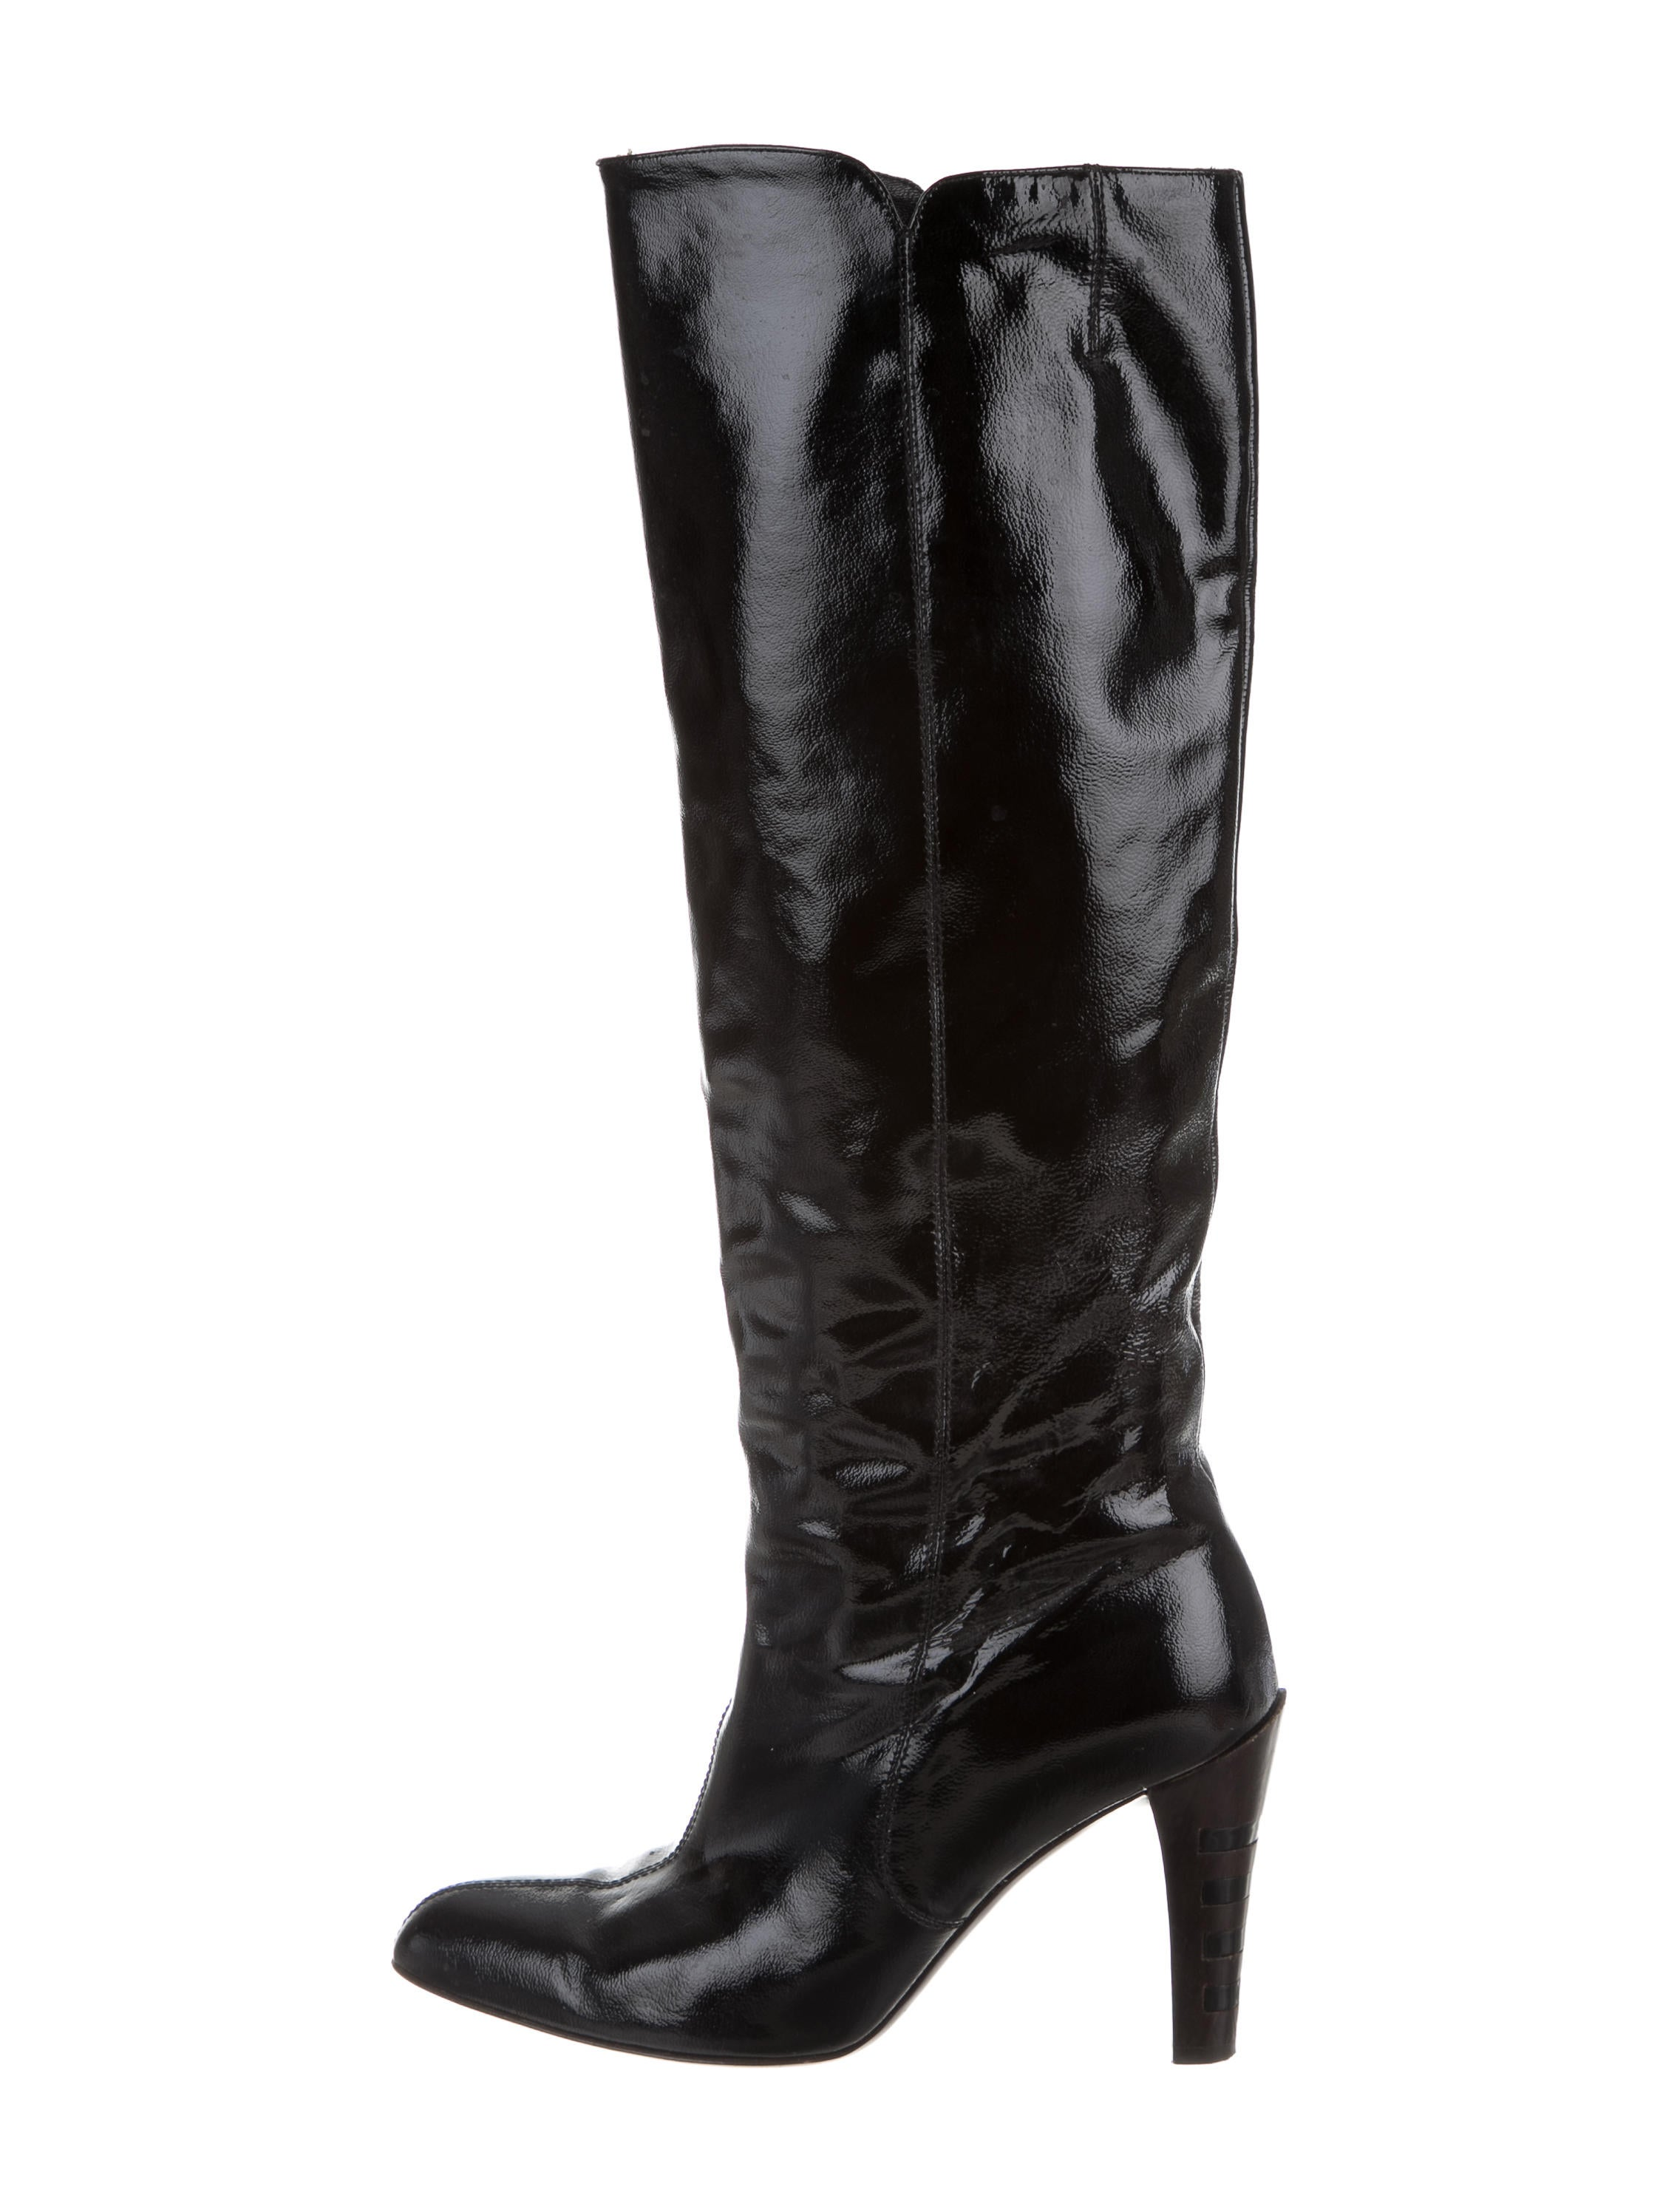 salvatore ferragamo patent leather knee high boots shoes